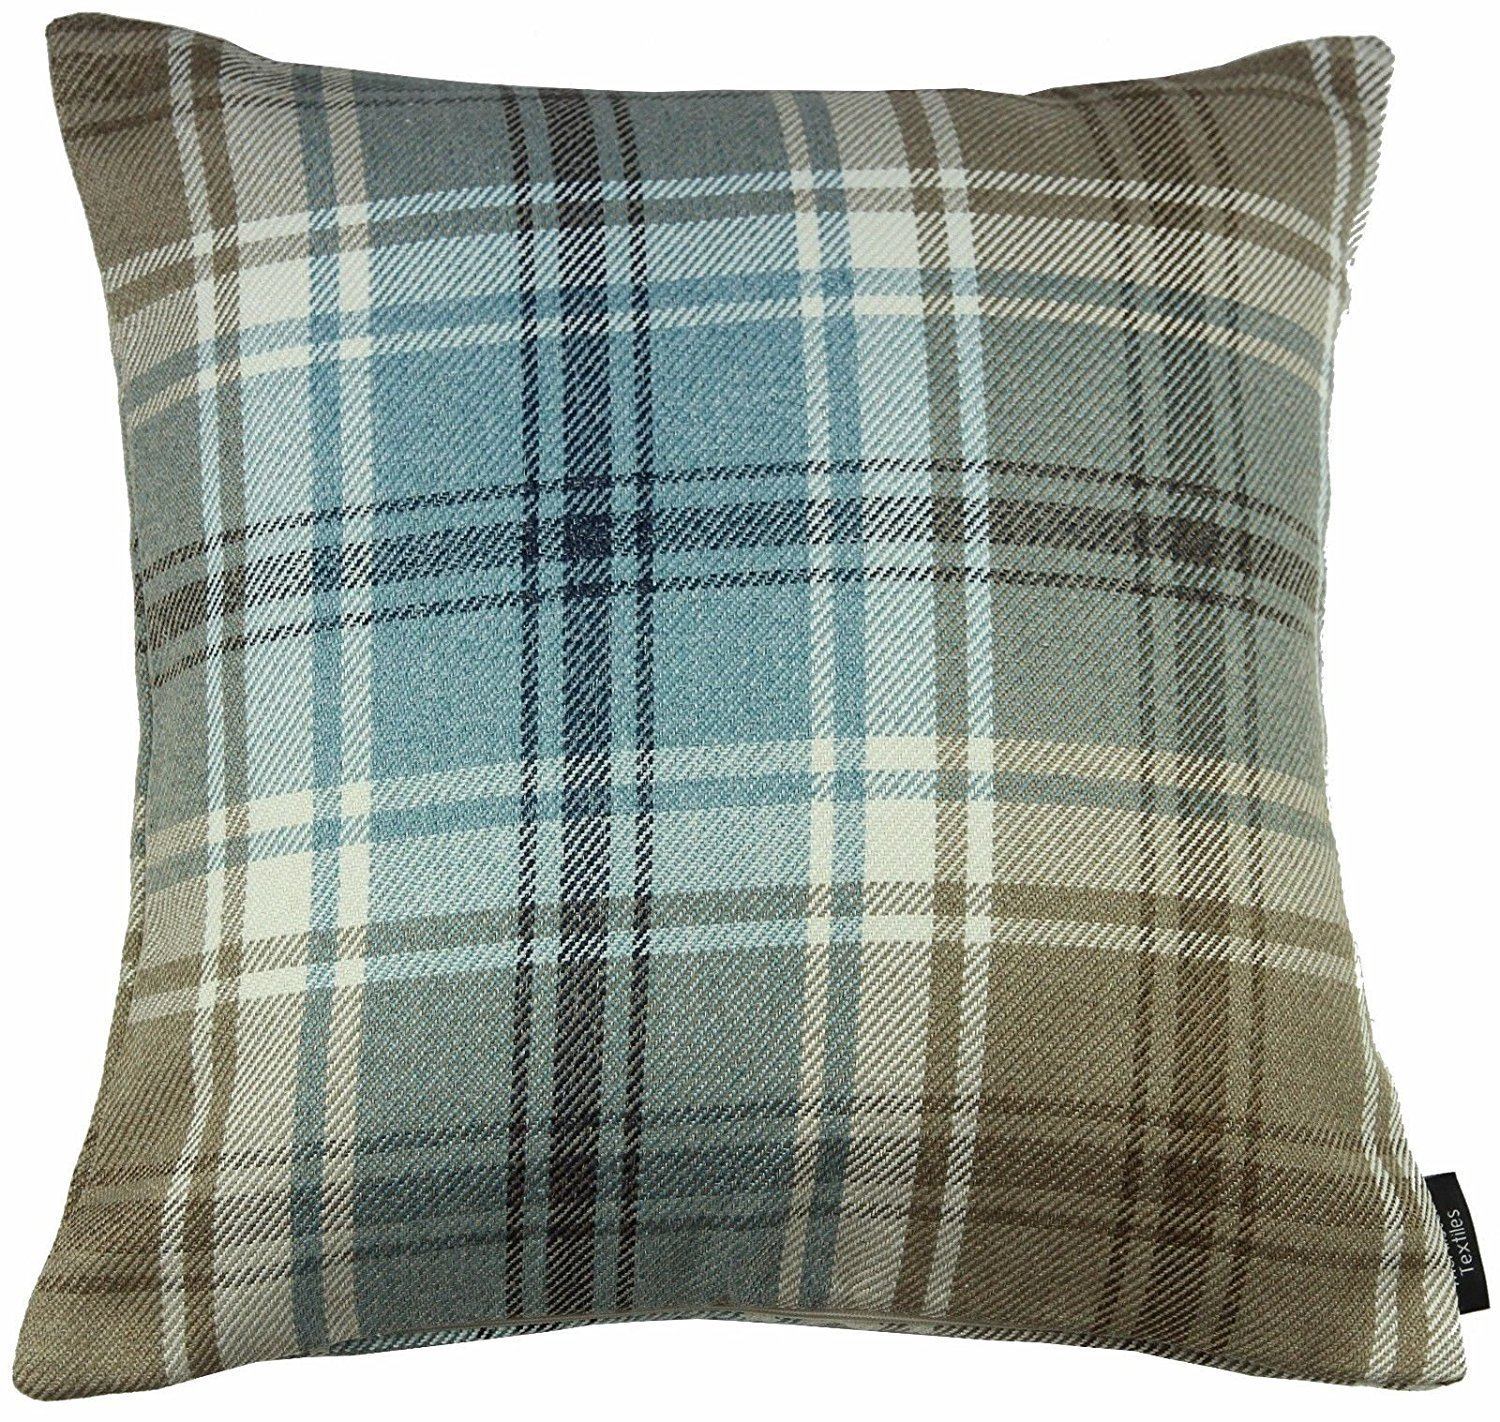 McAlister Angus Farmhouse Plaid 16 Decor Pillow Cover   Red 16x16 Throw Cushion Case   Heavy Linen Woven Texture   Striped Primitive Rustic Cabin Accent McAlister Textiles UKASNHKTN2622